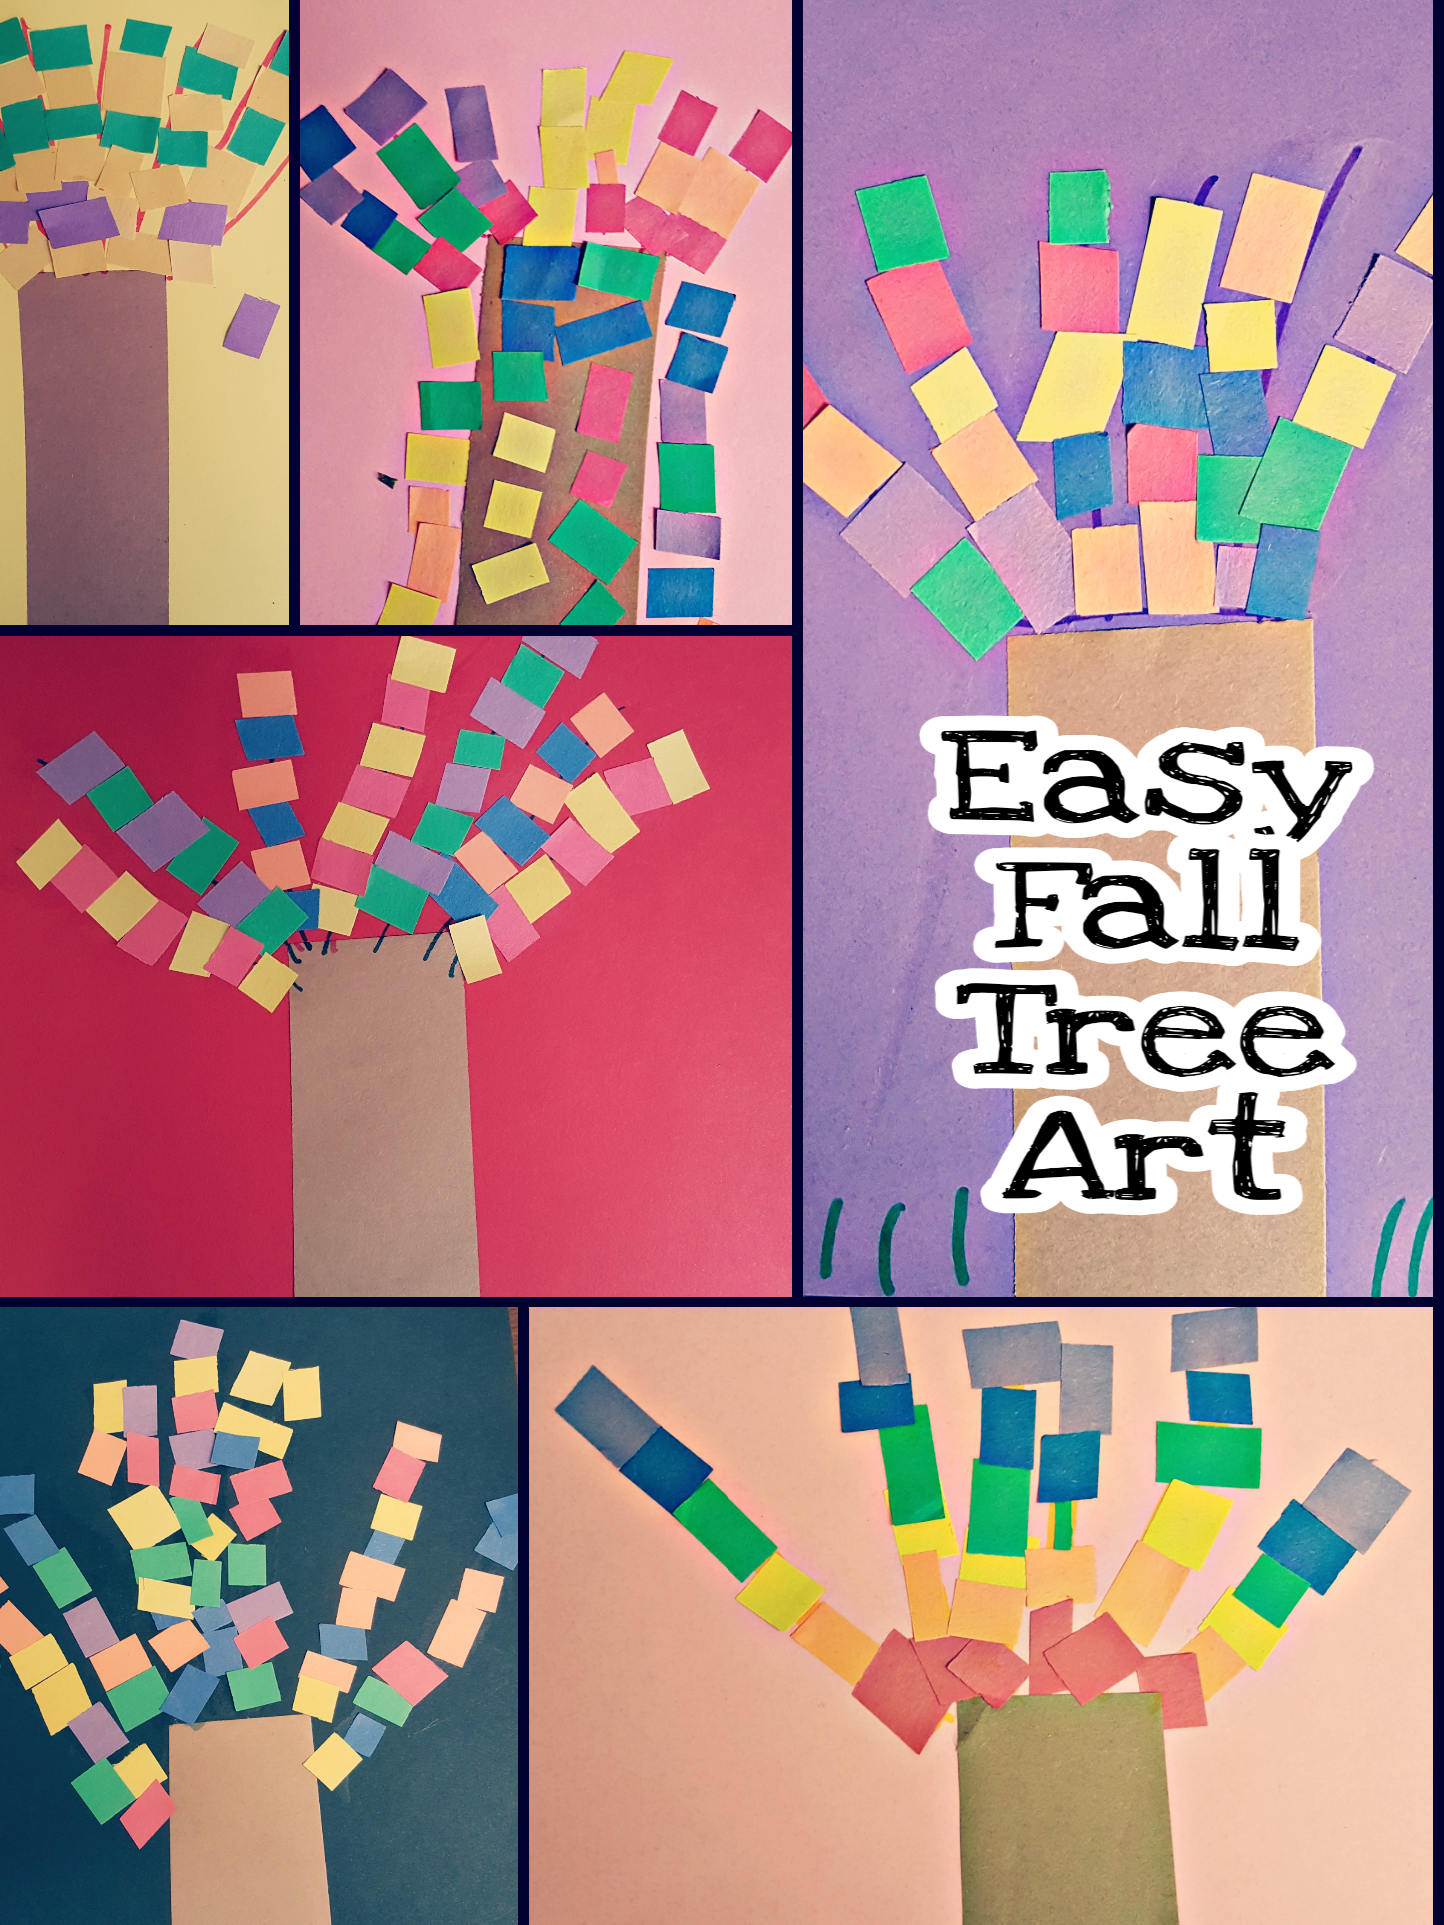 A Beautiful And Easy Fall Tree Craft For Young Kids